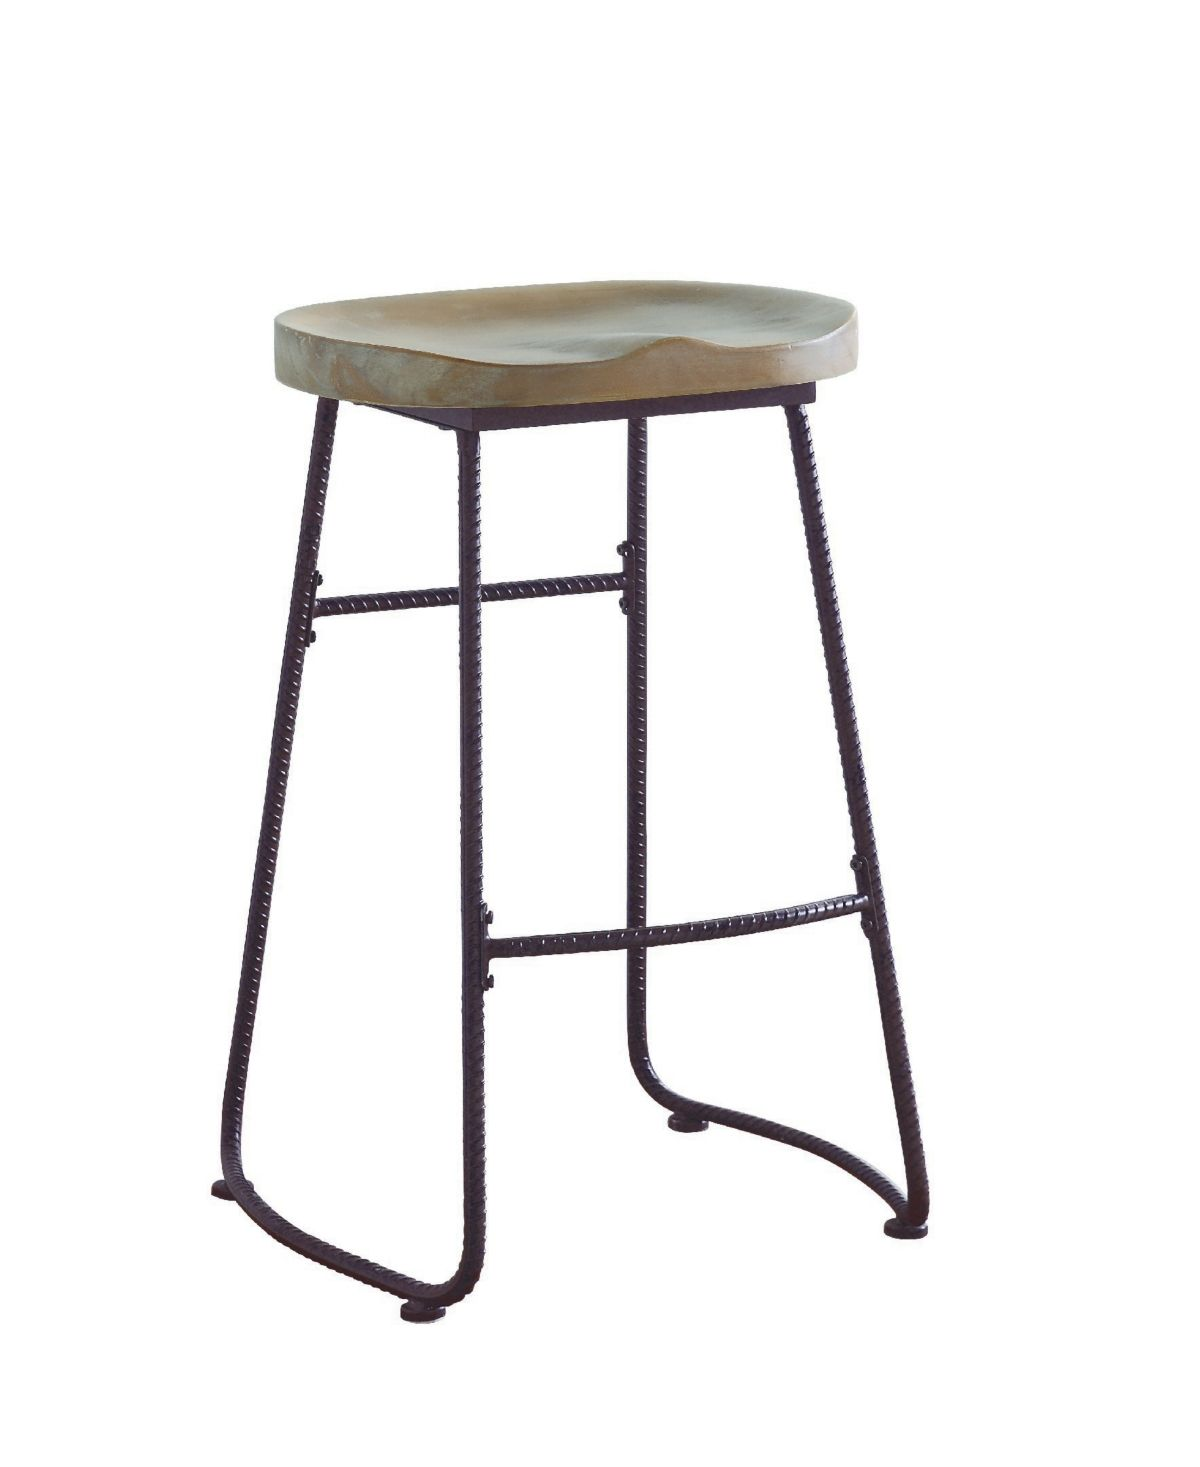 Coaster Home Furnishings Palmer Backless Bar Stool Reviews Furniture Macy S Backless Bar Stools Metal Bar Stools How To Antique Wood